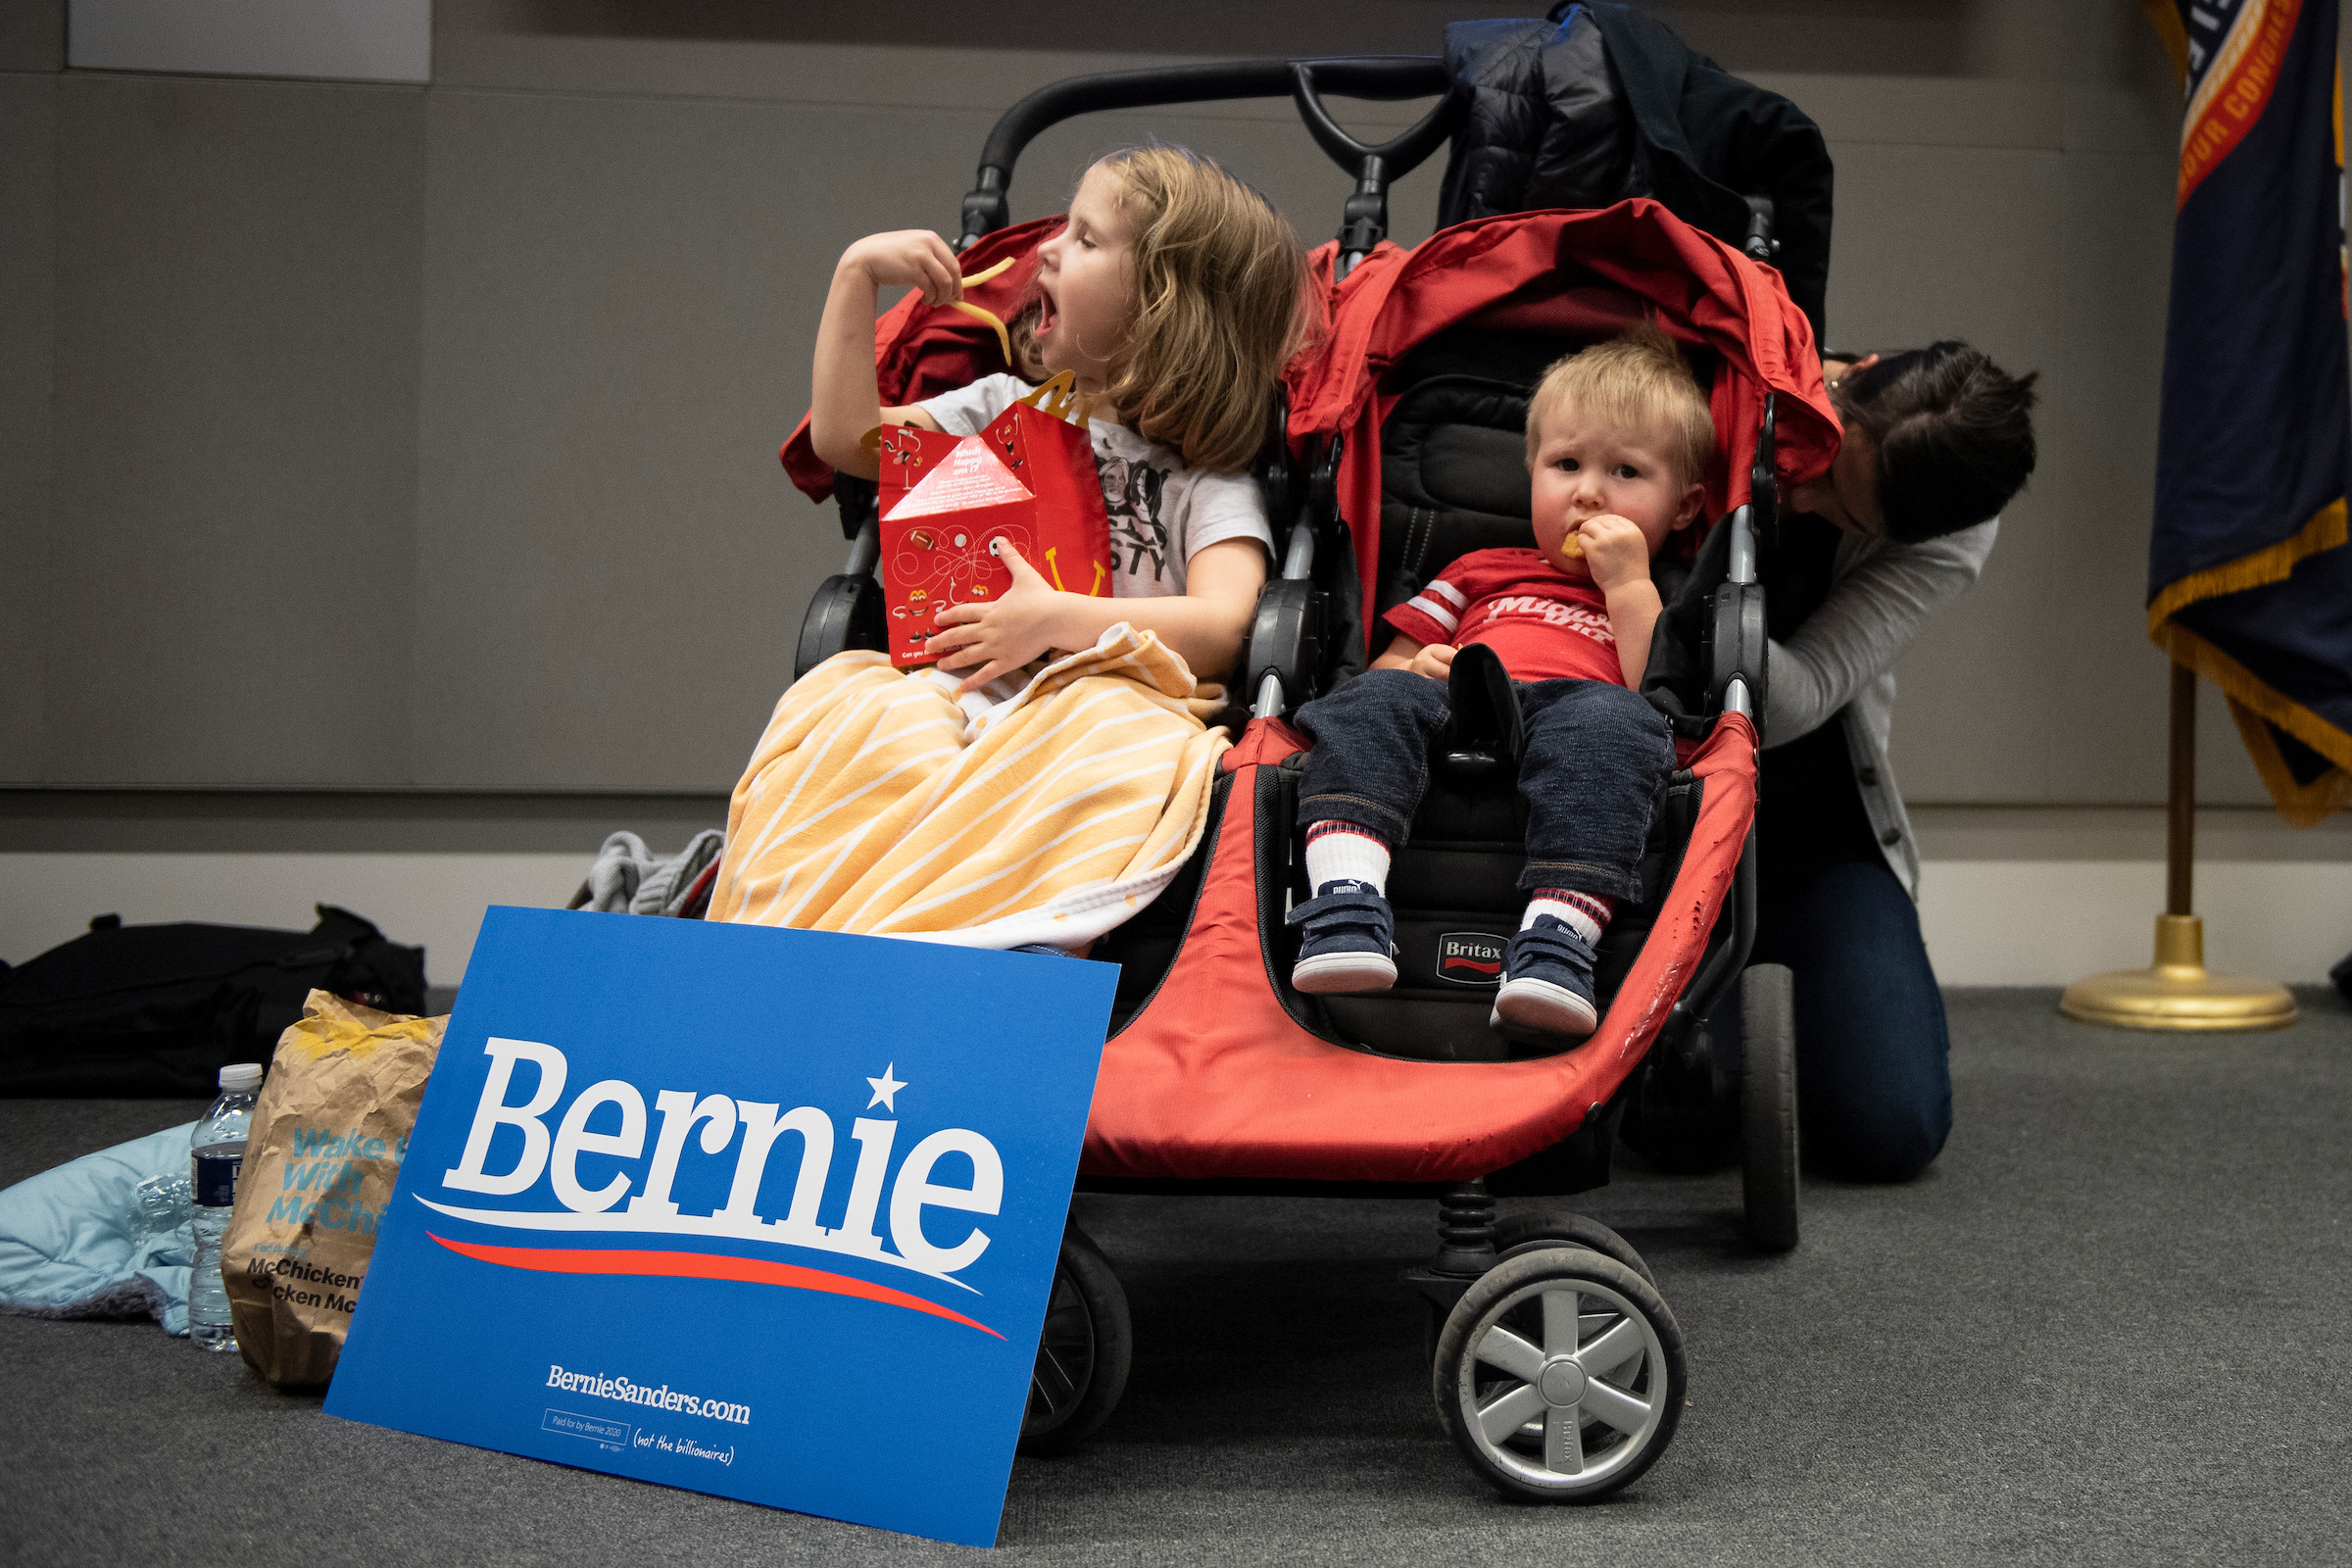 UNITED STATES - FEBRUARY 3: Aurelia Peterson, 3, left, and Jude Peterson, 1, eat food before the start of a Democratic satellite caucus at the International Brotherhood of Electrical Workers Hall on Monday, Feb. 3, 2020. (Photo by Caroline Brehman/CQ Roll Call)